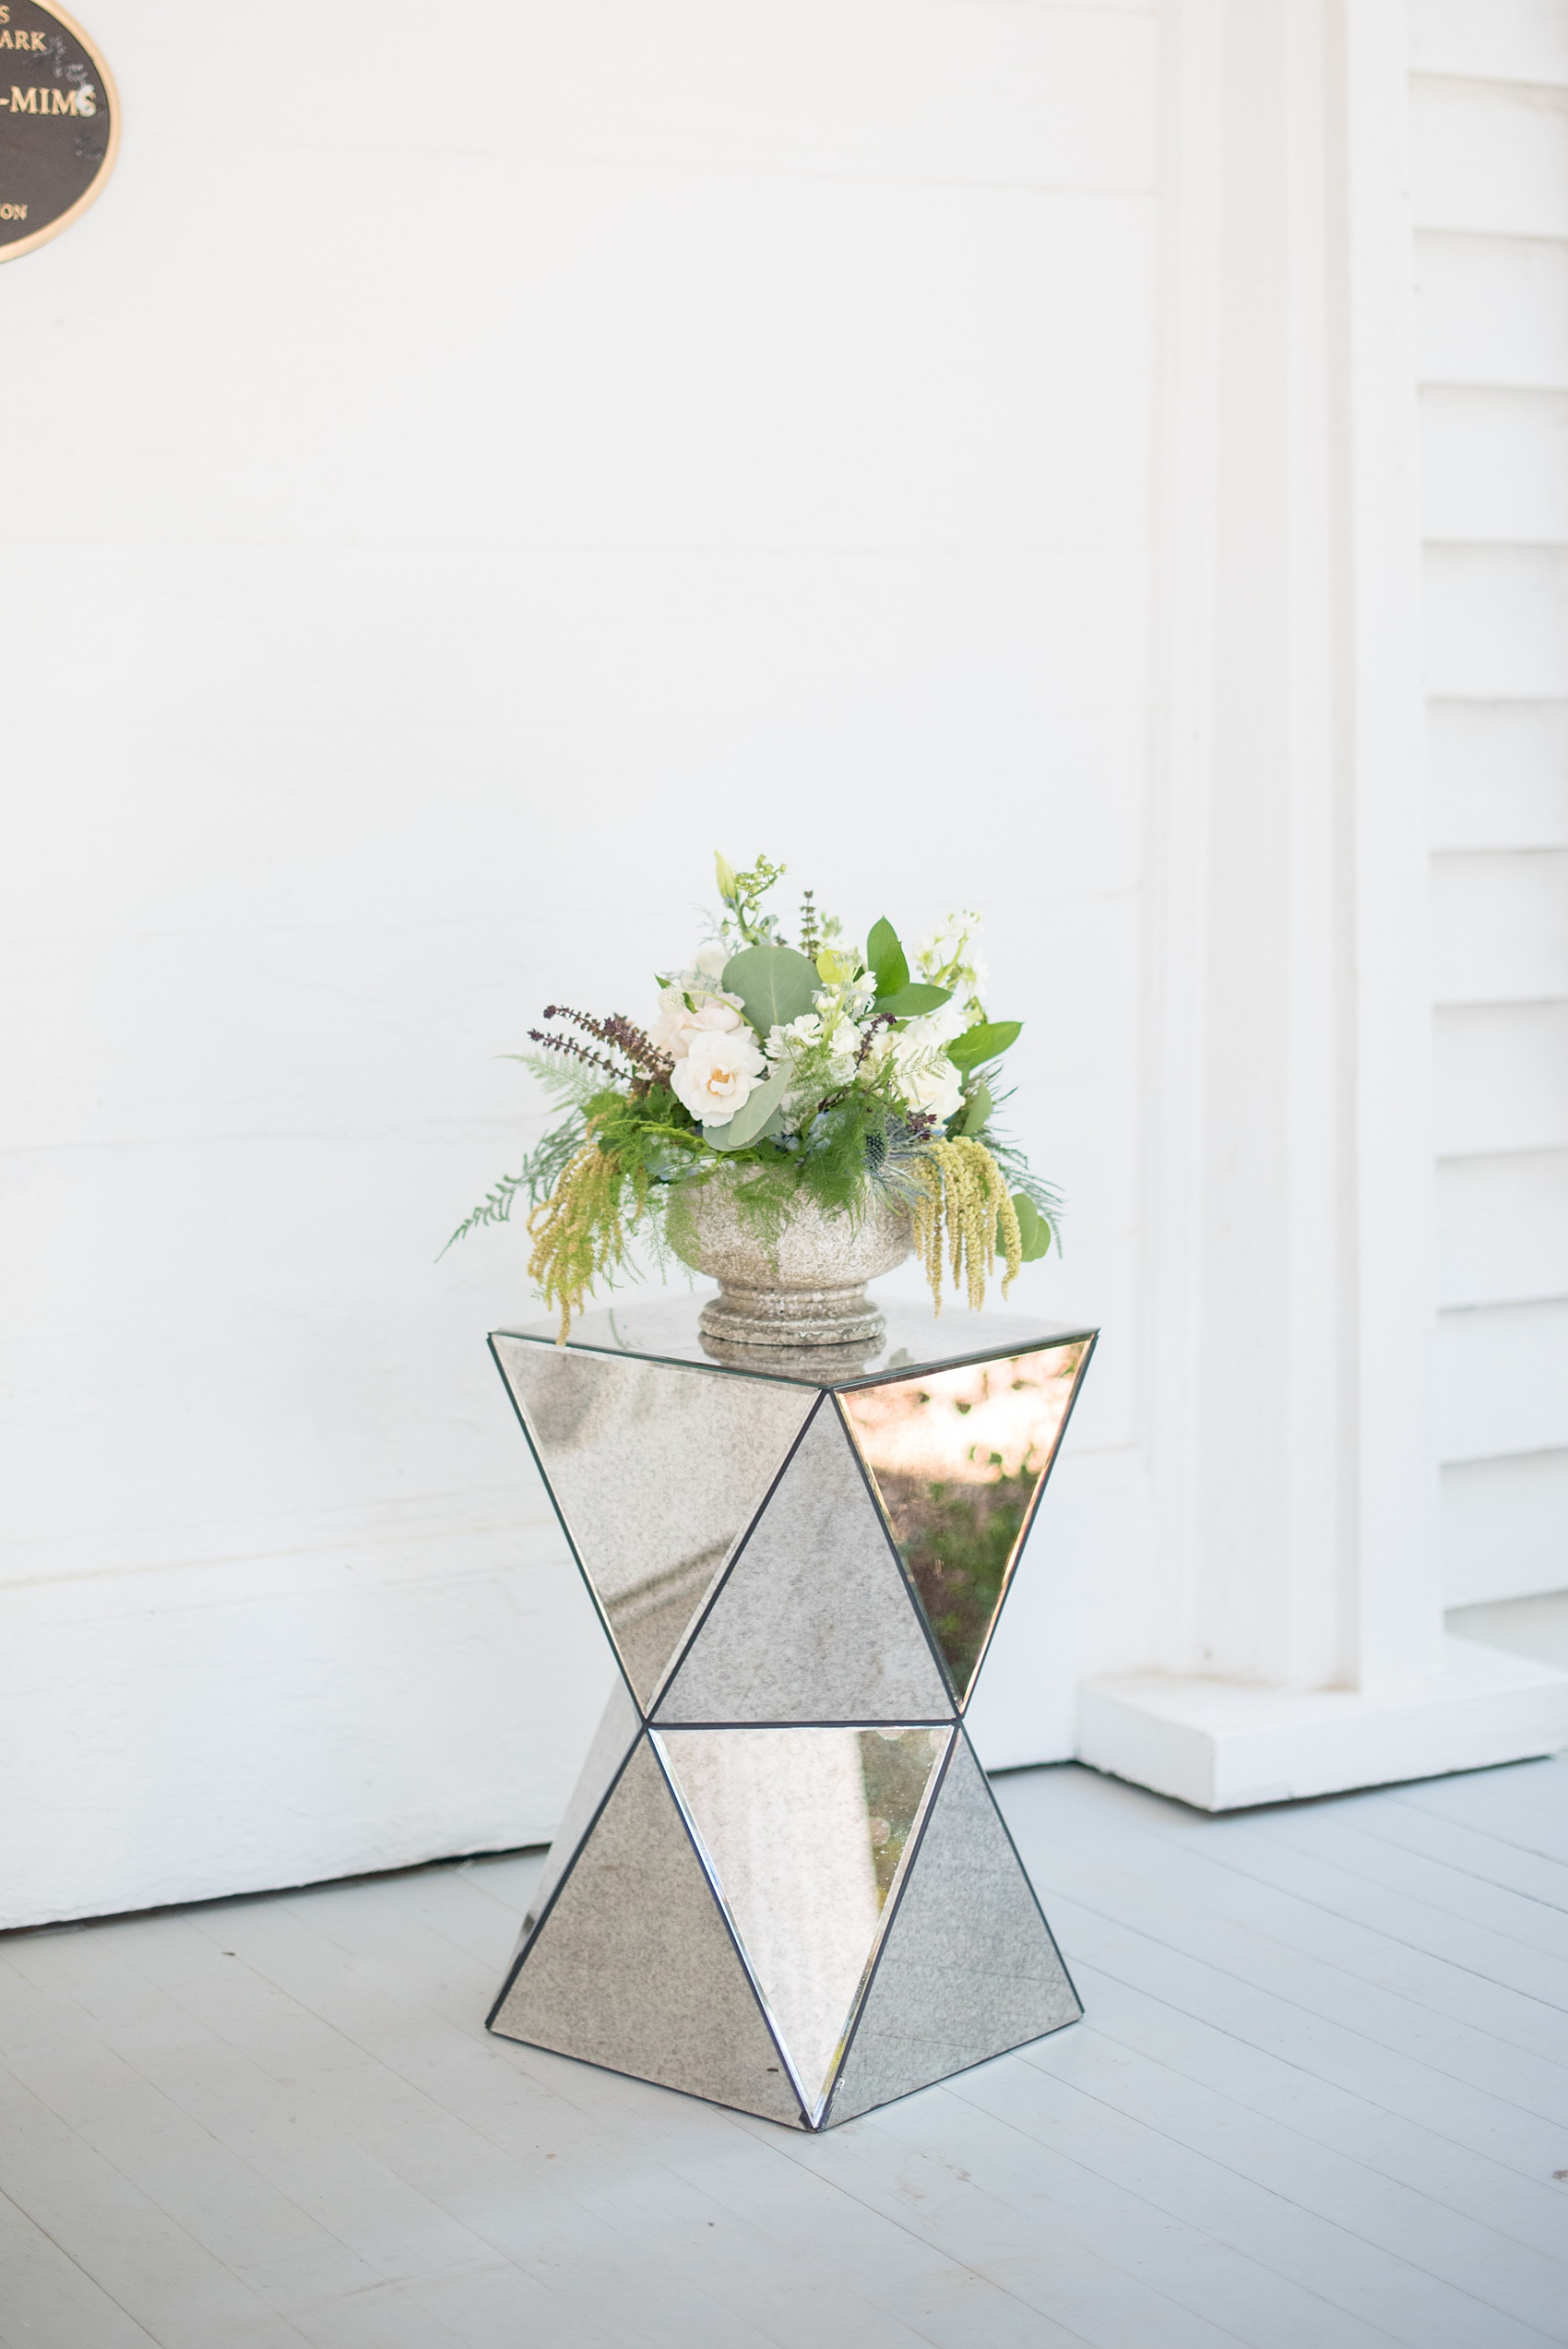 Mikkel Paige Photography pictures of a wedding at Leslie-Alford Mim's House in North Carolina for a Mad Dash Weddings event. Photo of a trendy, angled mirror side table and floral centerpiece.